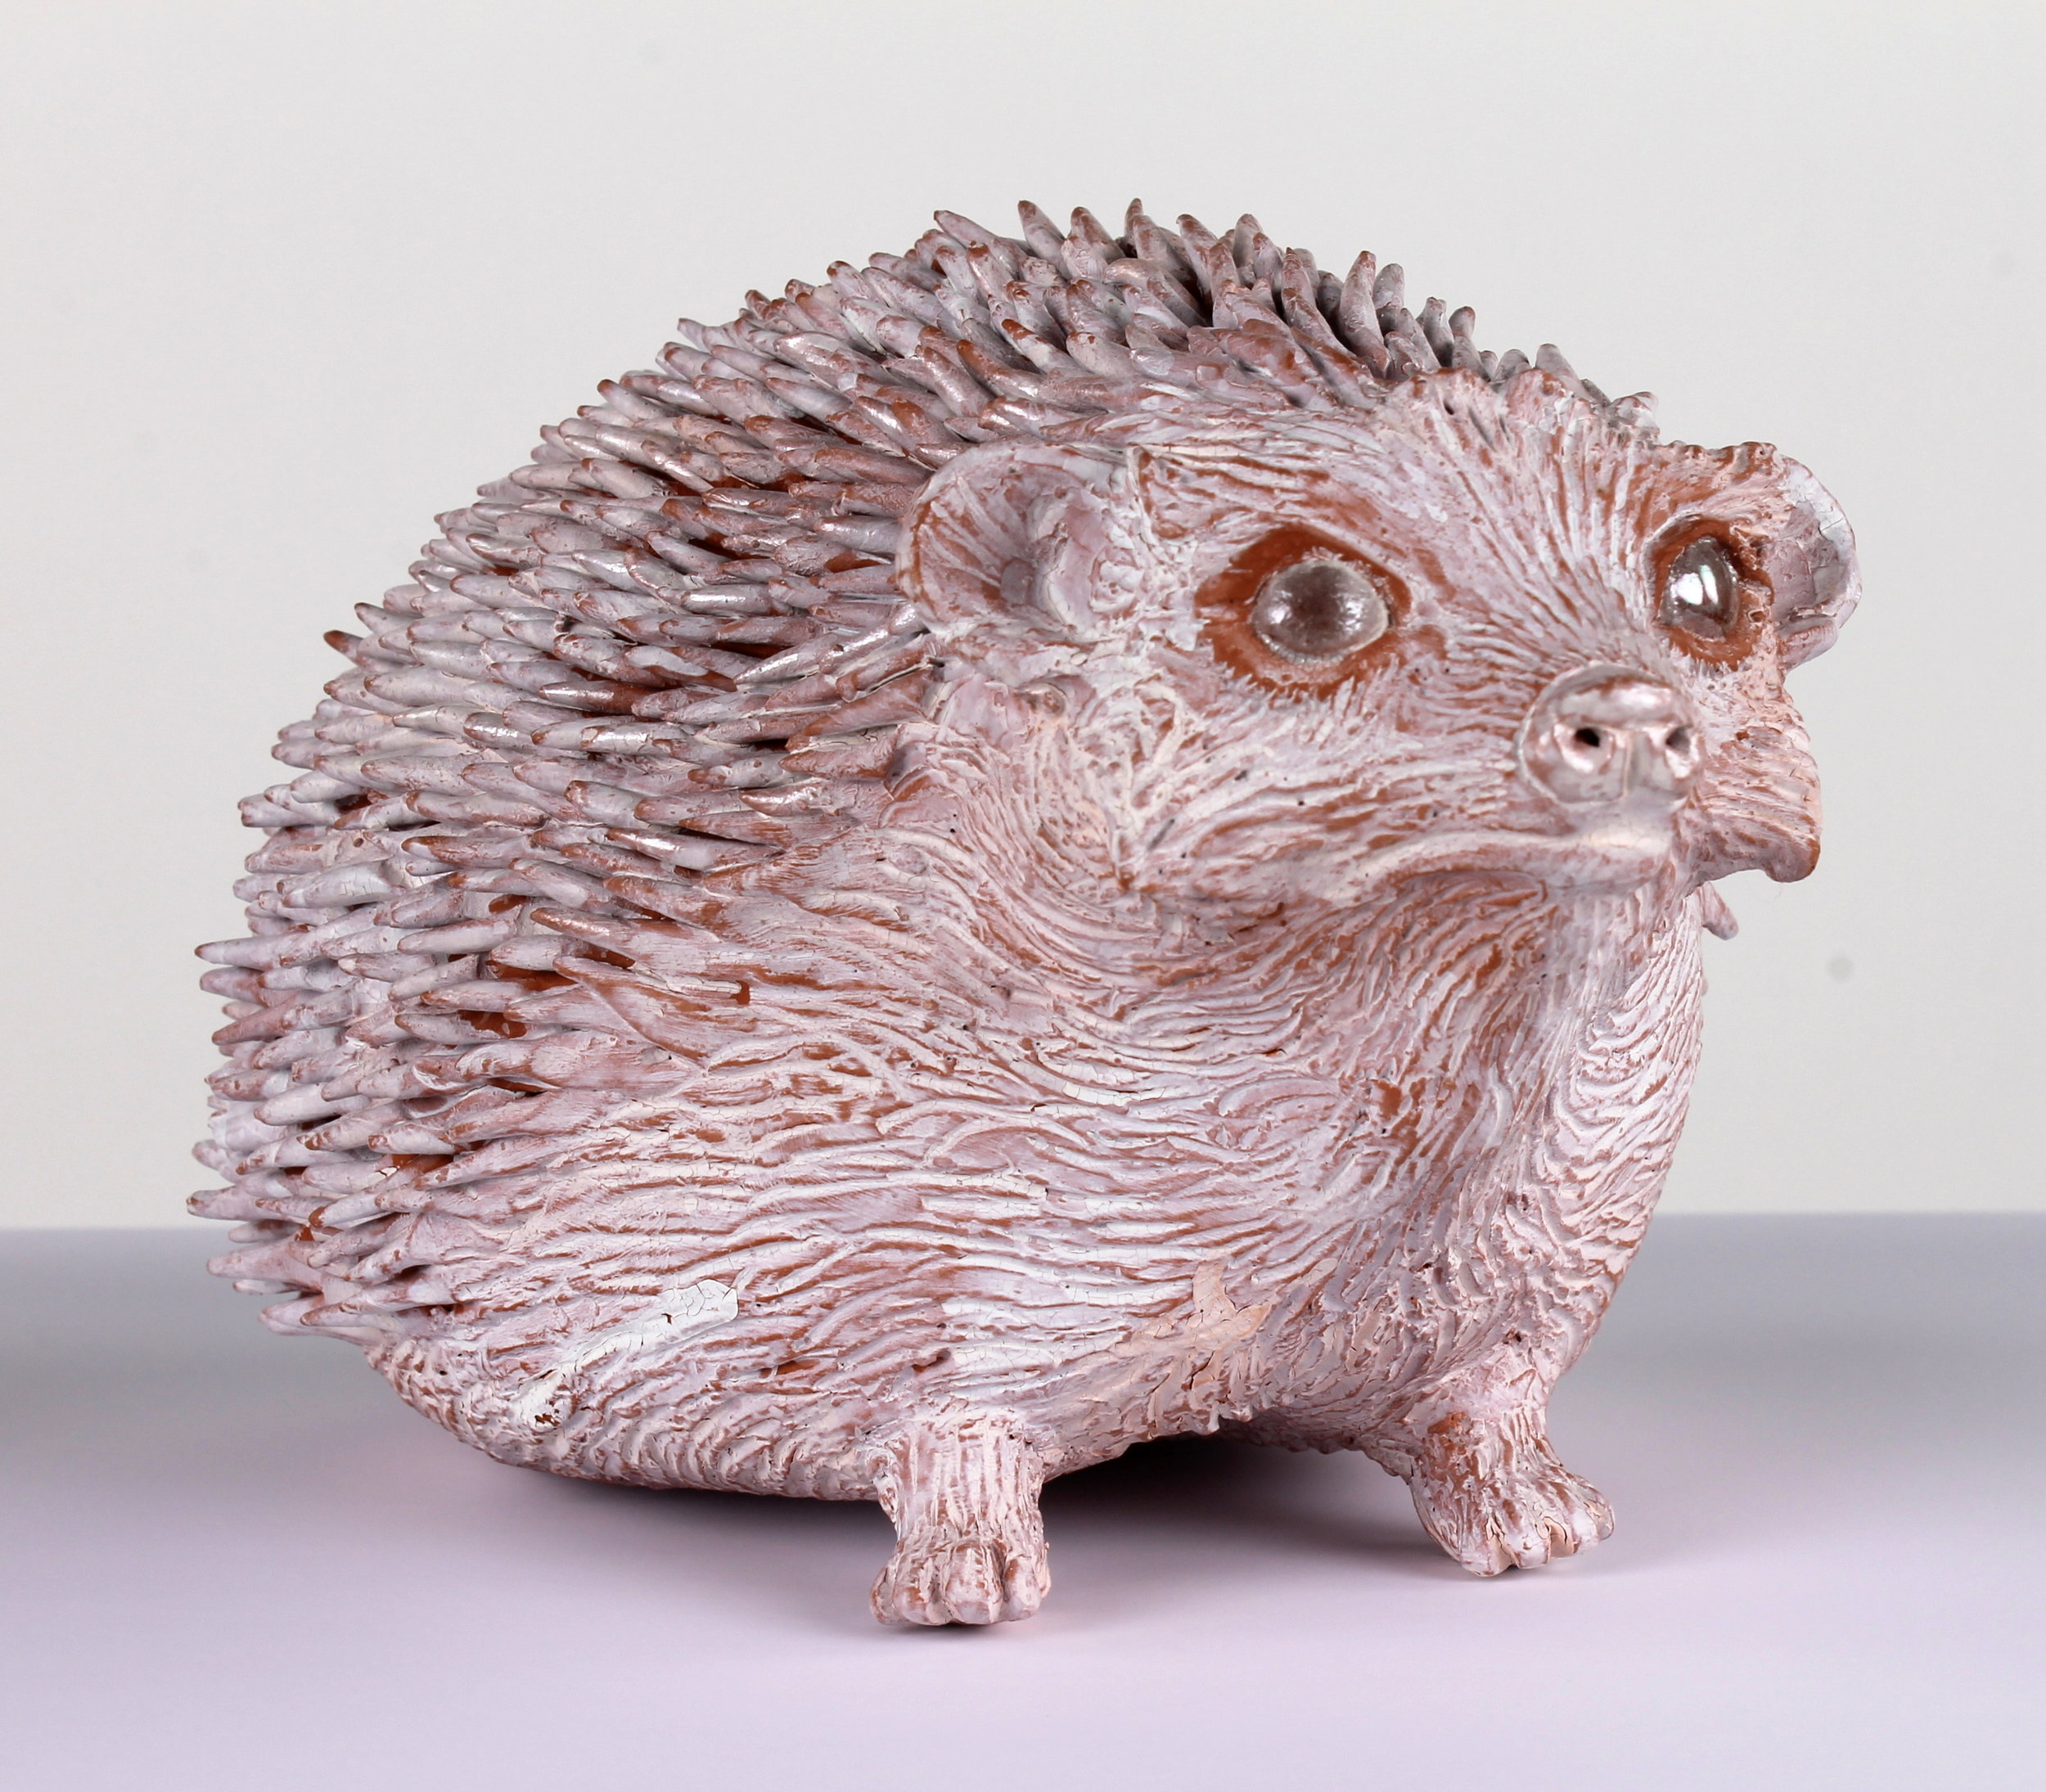 Hedgehog01.JPG